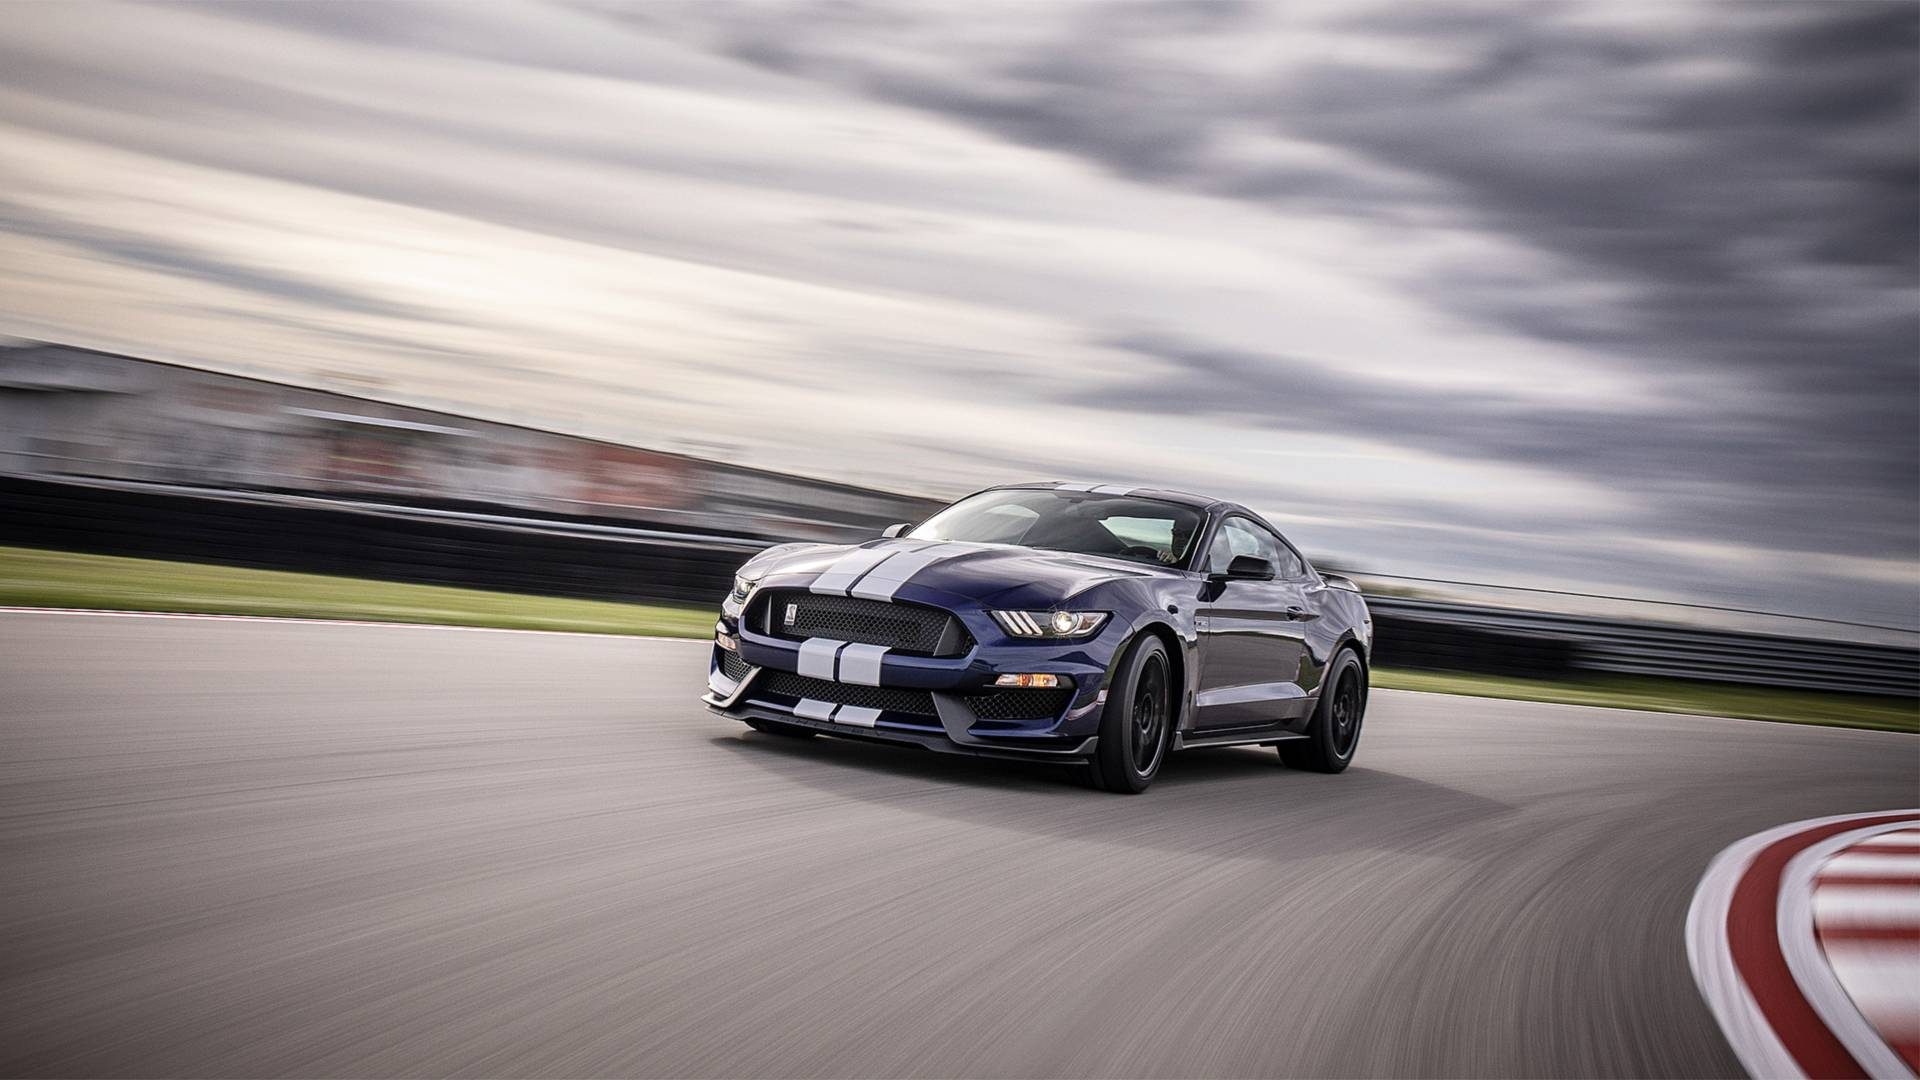 2019-ford-mustang-shelby-gt350 (1).jpg